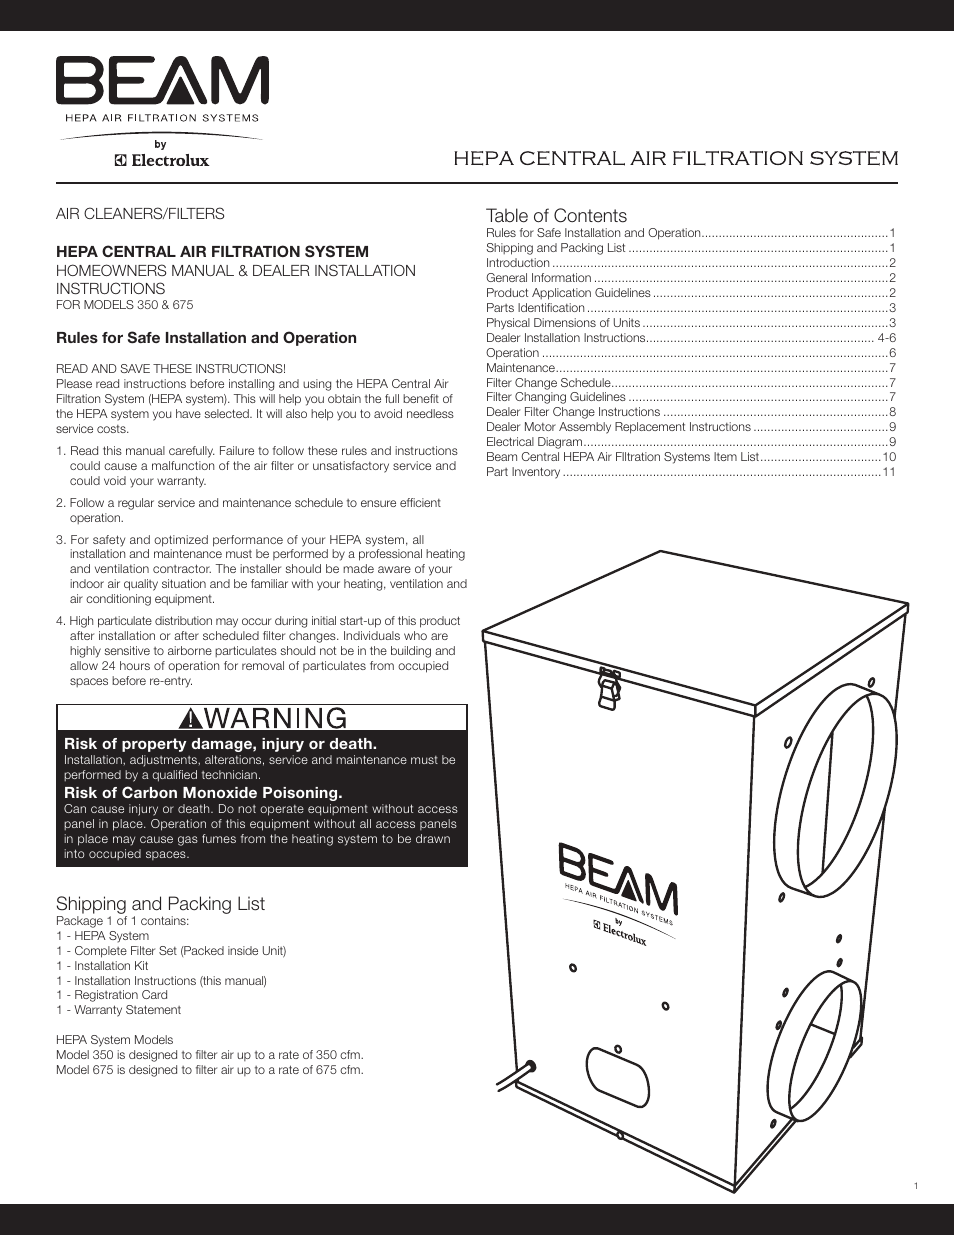 ... Array - beam electrolux hepa air filter central user manual 12 pages rh  manualsdir ...